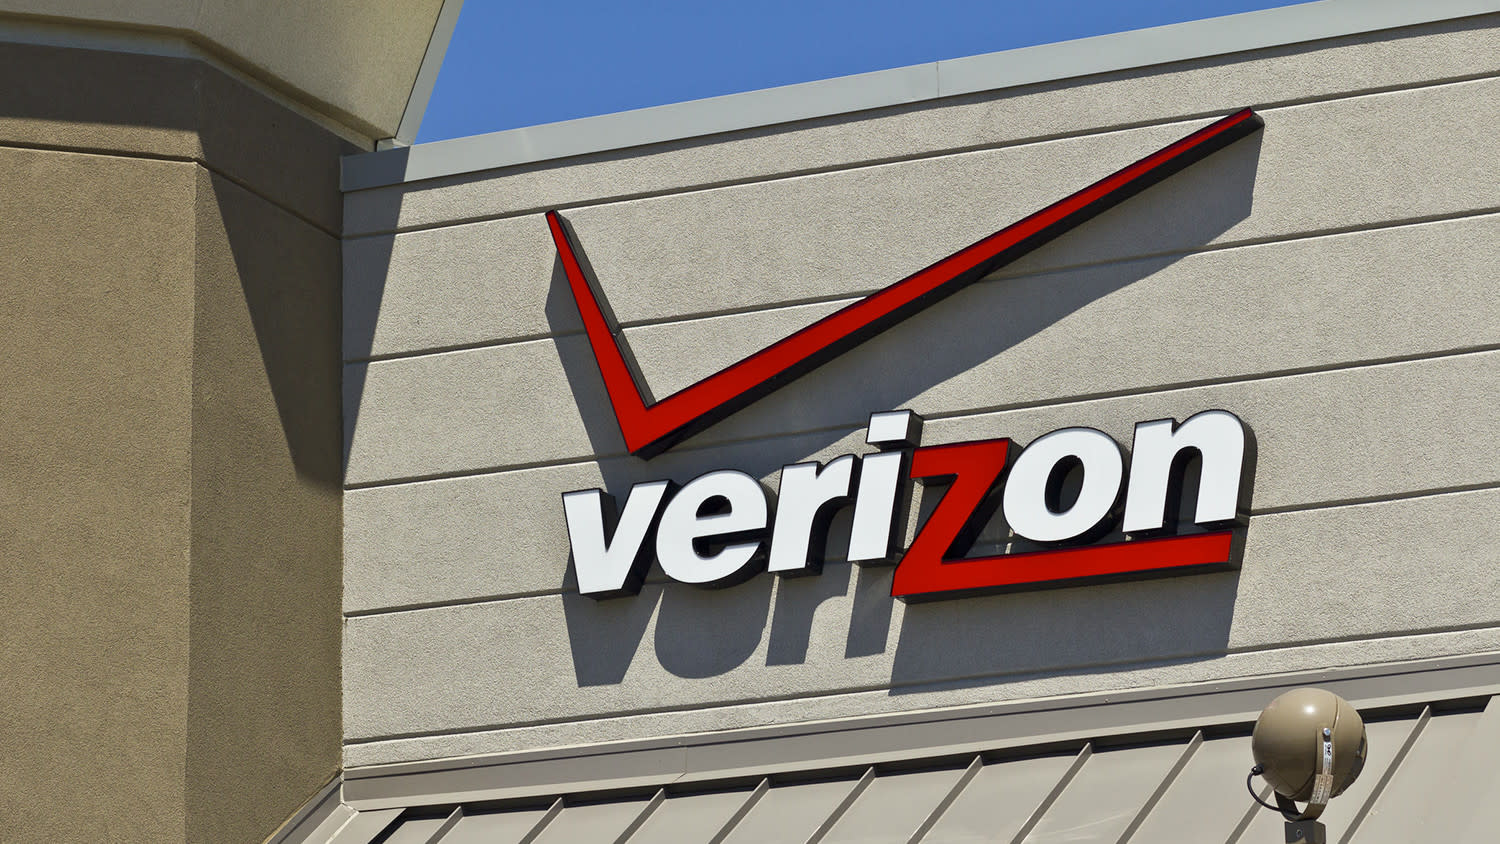 Who's the best cell phone carrier of them all? Verizon, according to RootMetrics